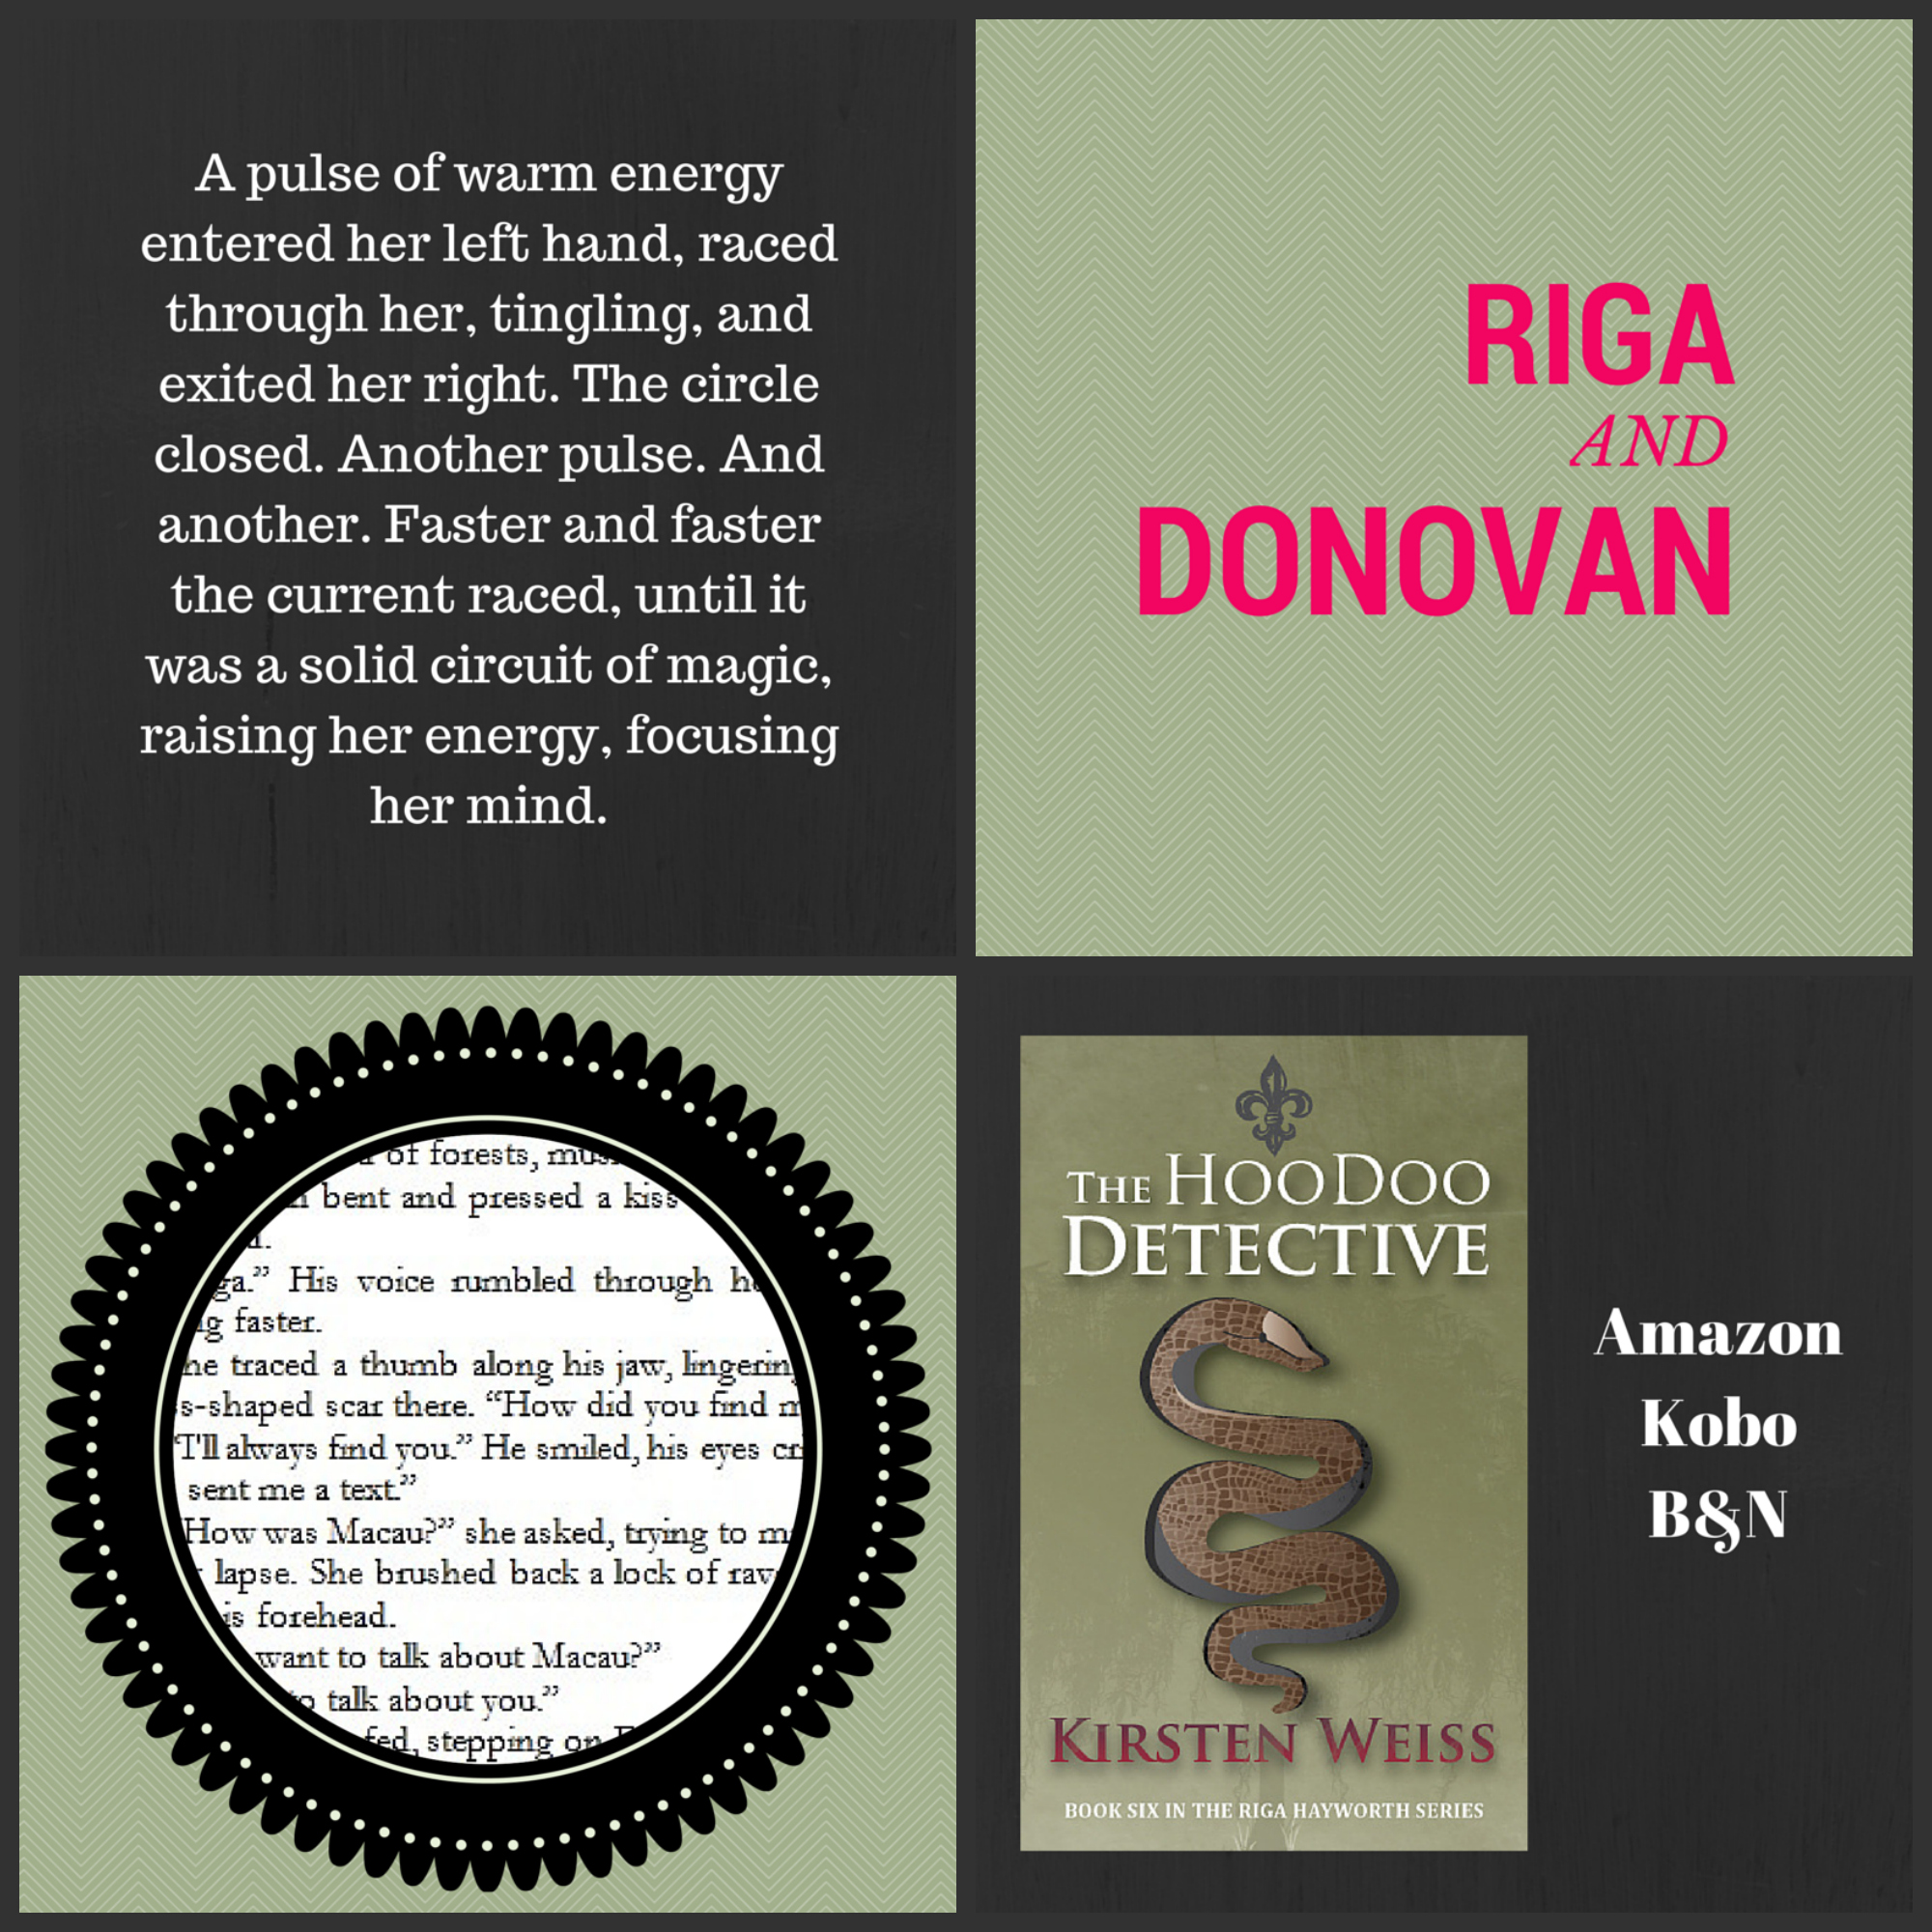 Hoodoo Detective Collage Of Cover And Excerpts